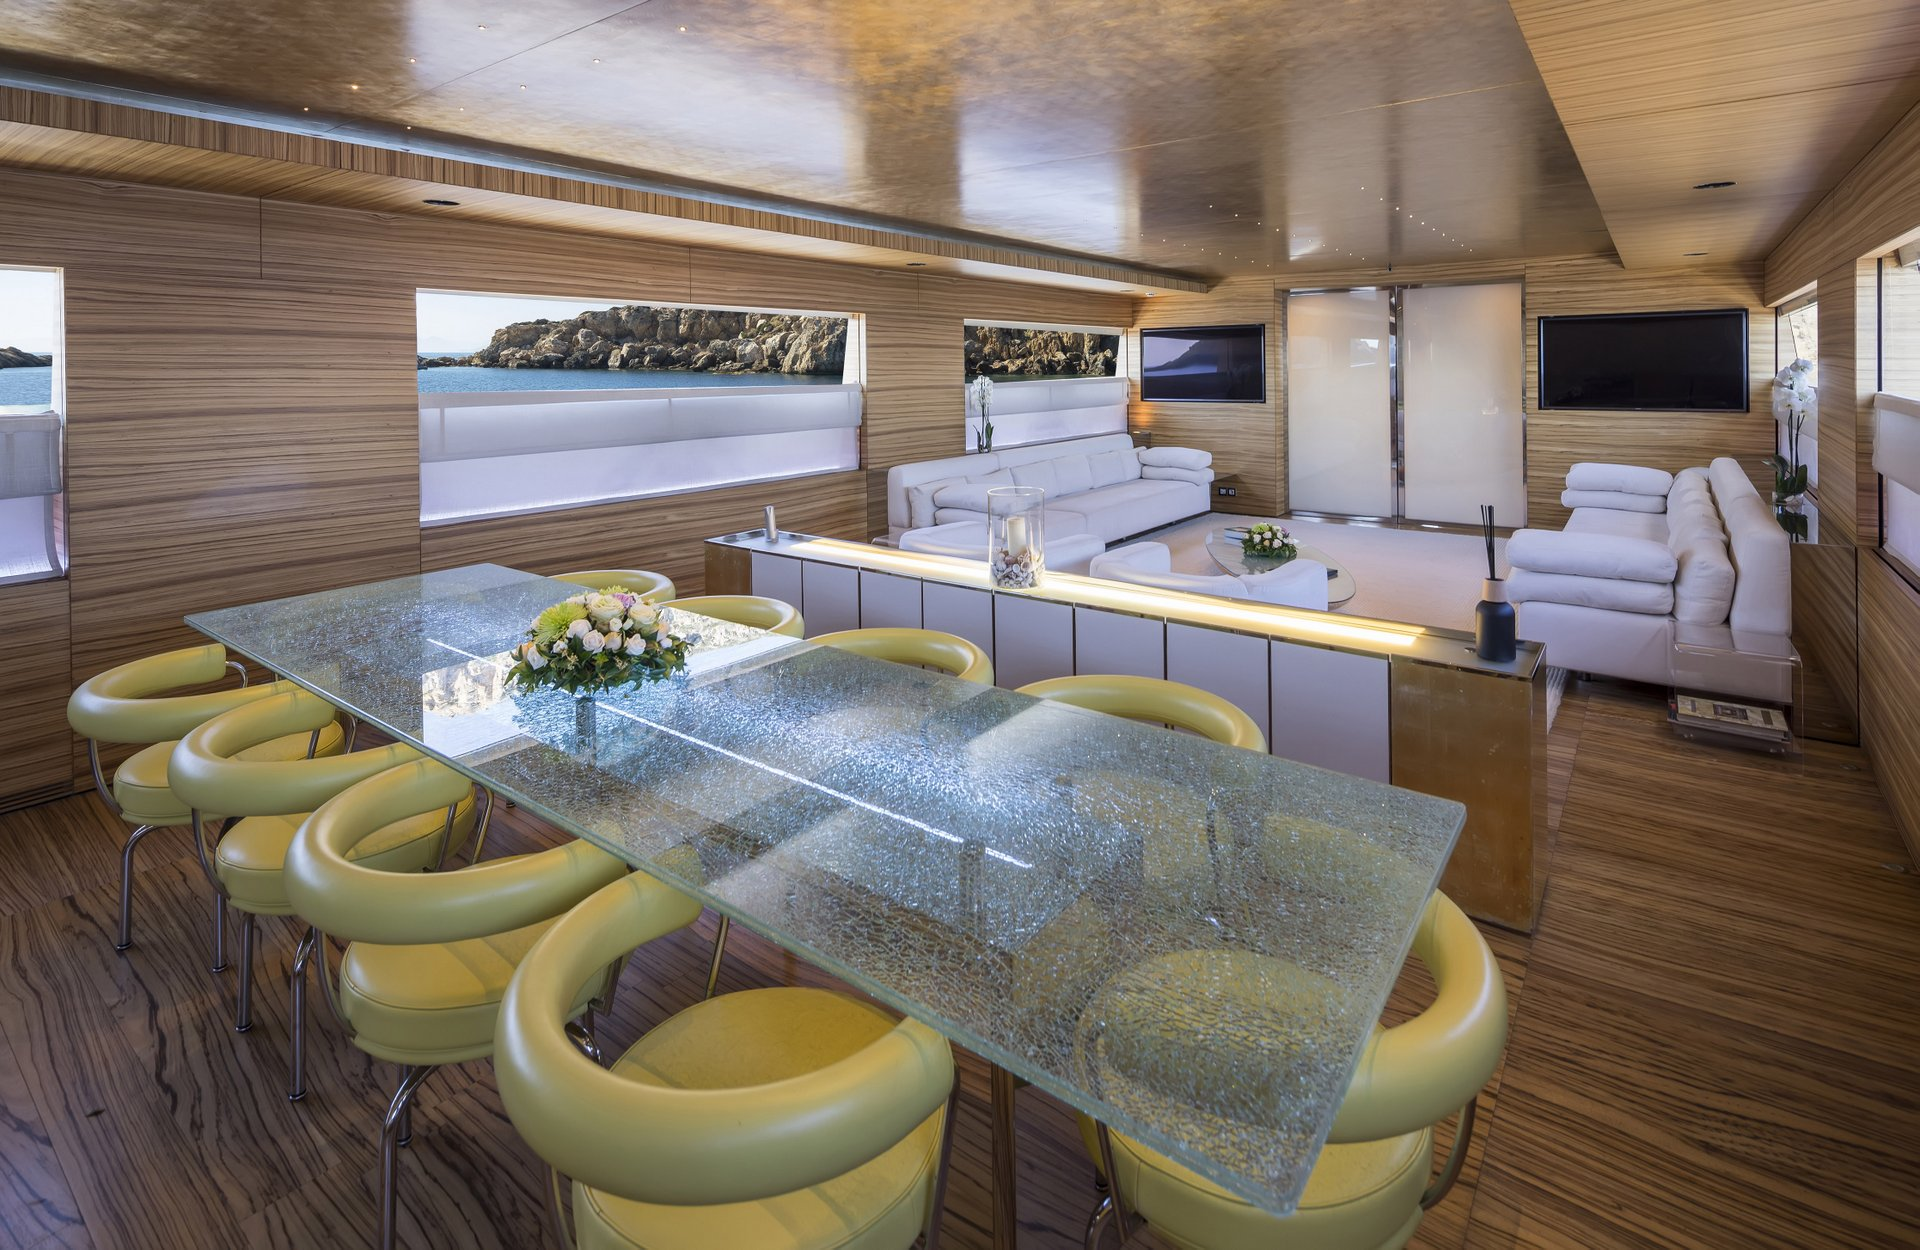 M/Y MABROUK yacht for charter indoor area